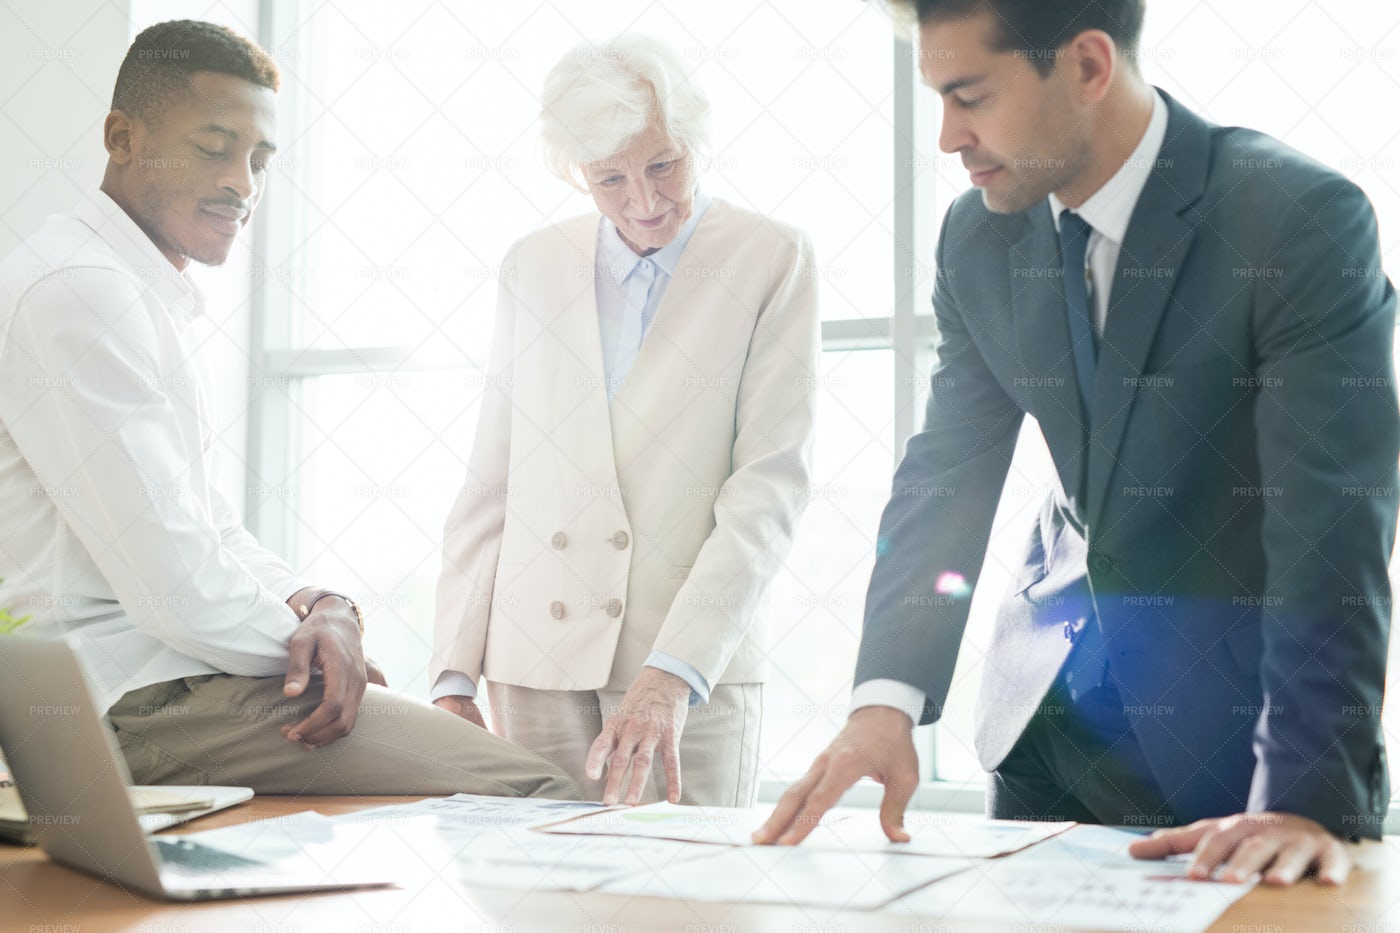 Content Business Colleagues...: Stock Photos